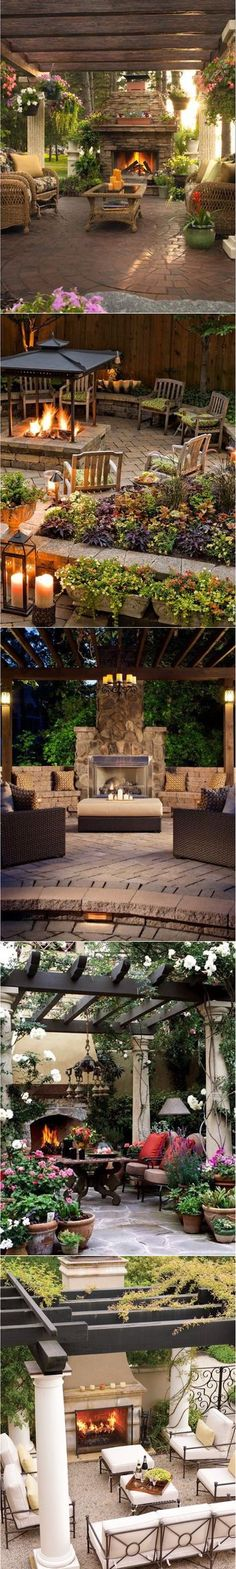 #outdoors #outdoorspace #outdoorliving #landscaping #trellis ideas #fireplace